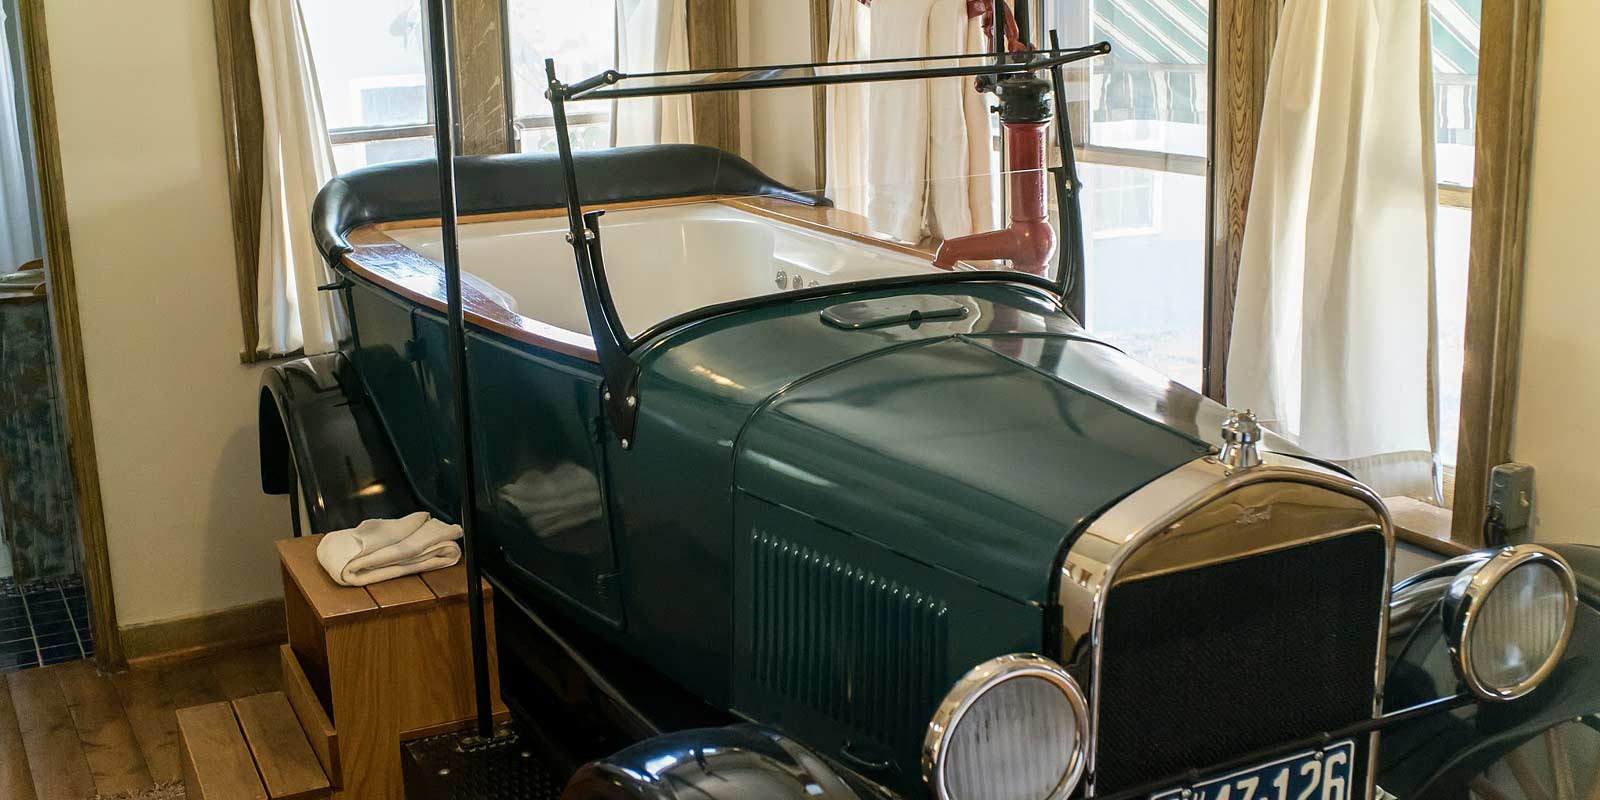 Fun Model-T Whirlpool Tub in the Phileas Fogg Suite